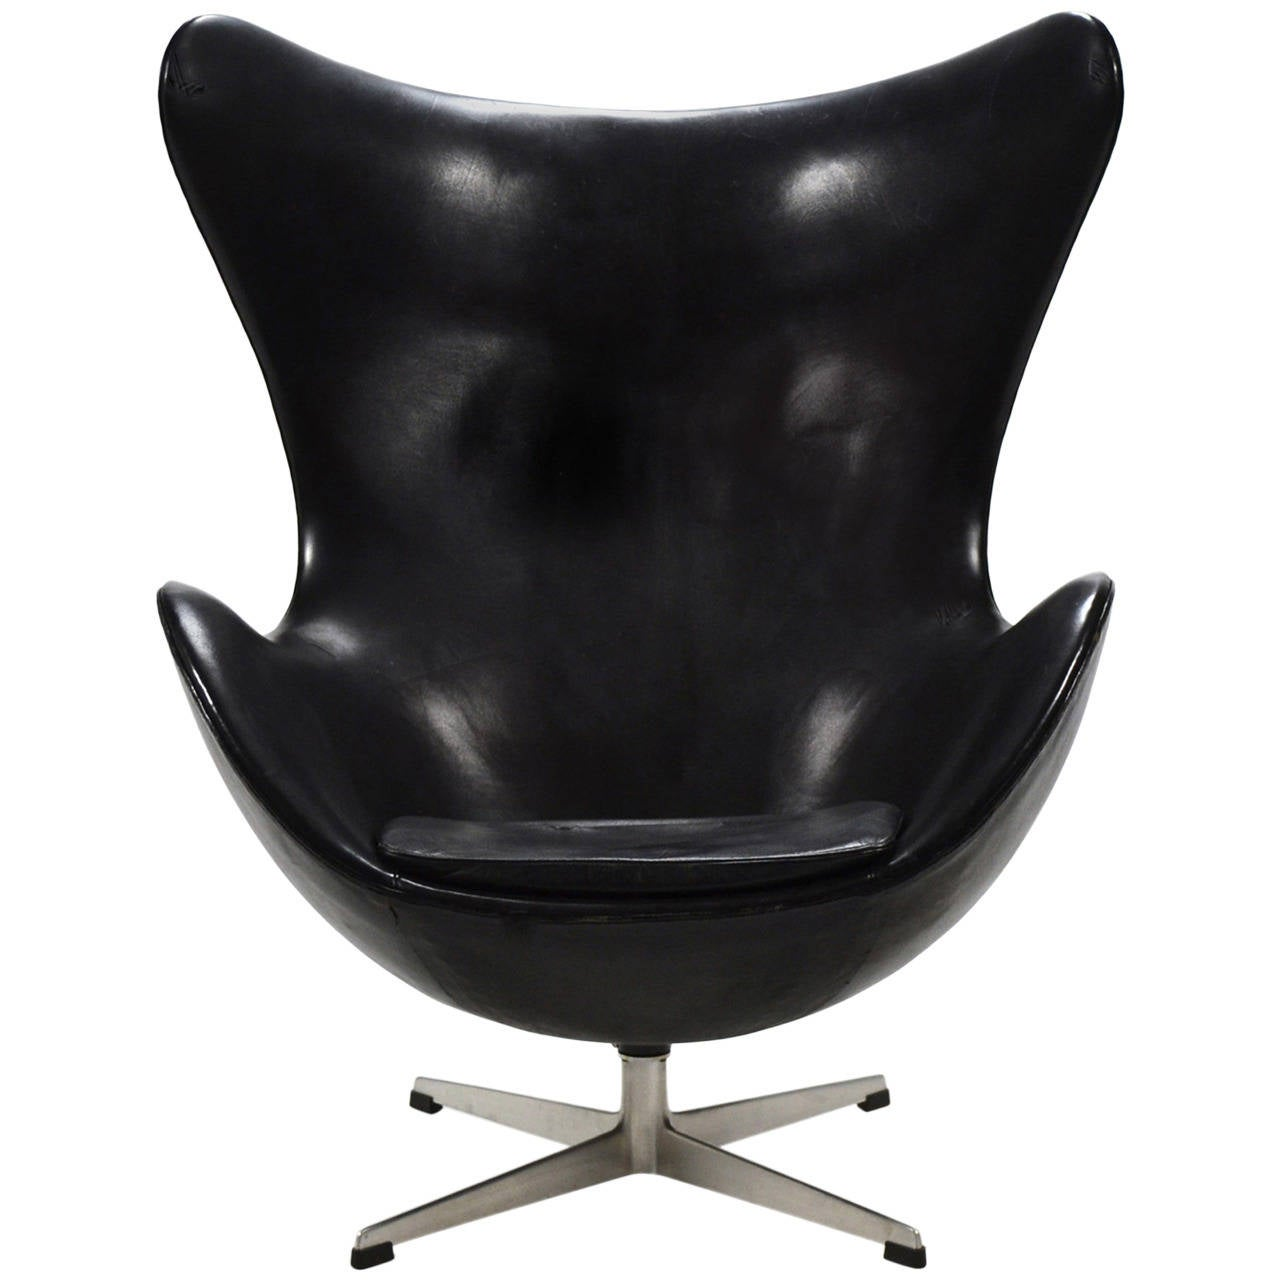 Egg Chairs Arne Jacobsen Early Egg Chair In Original Black Leather